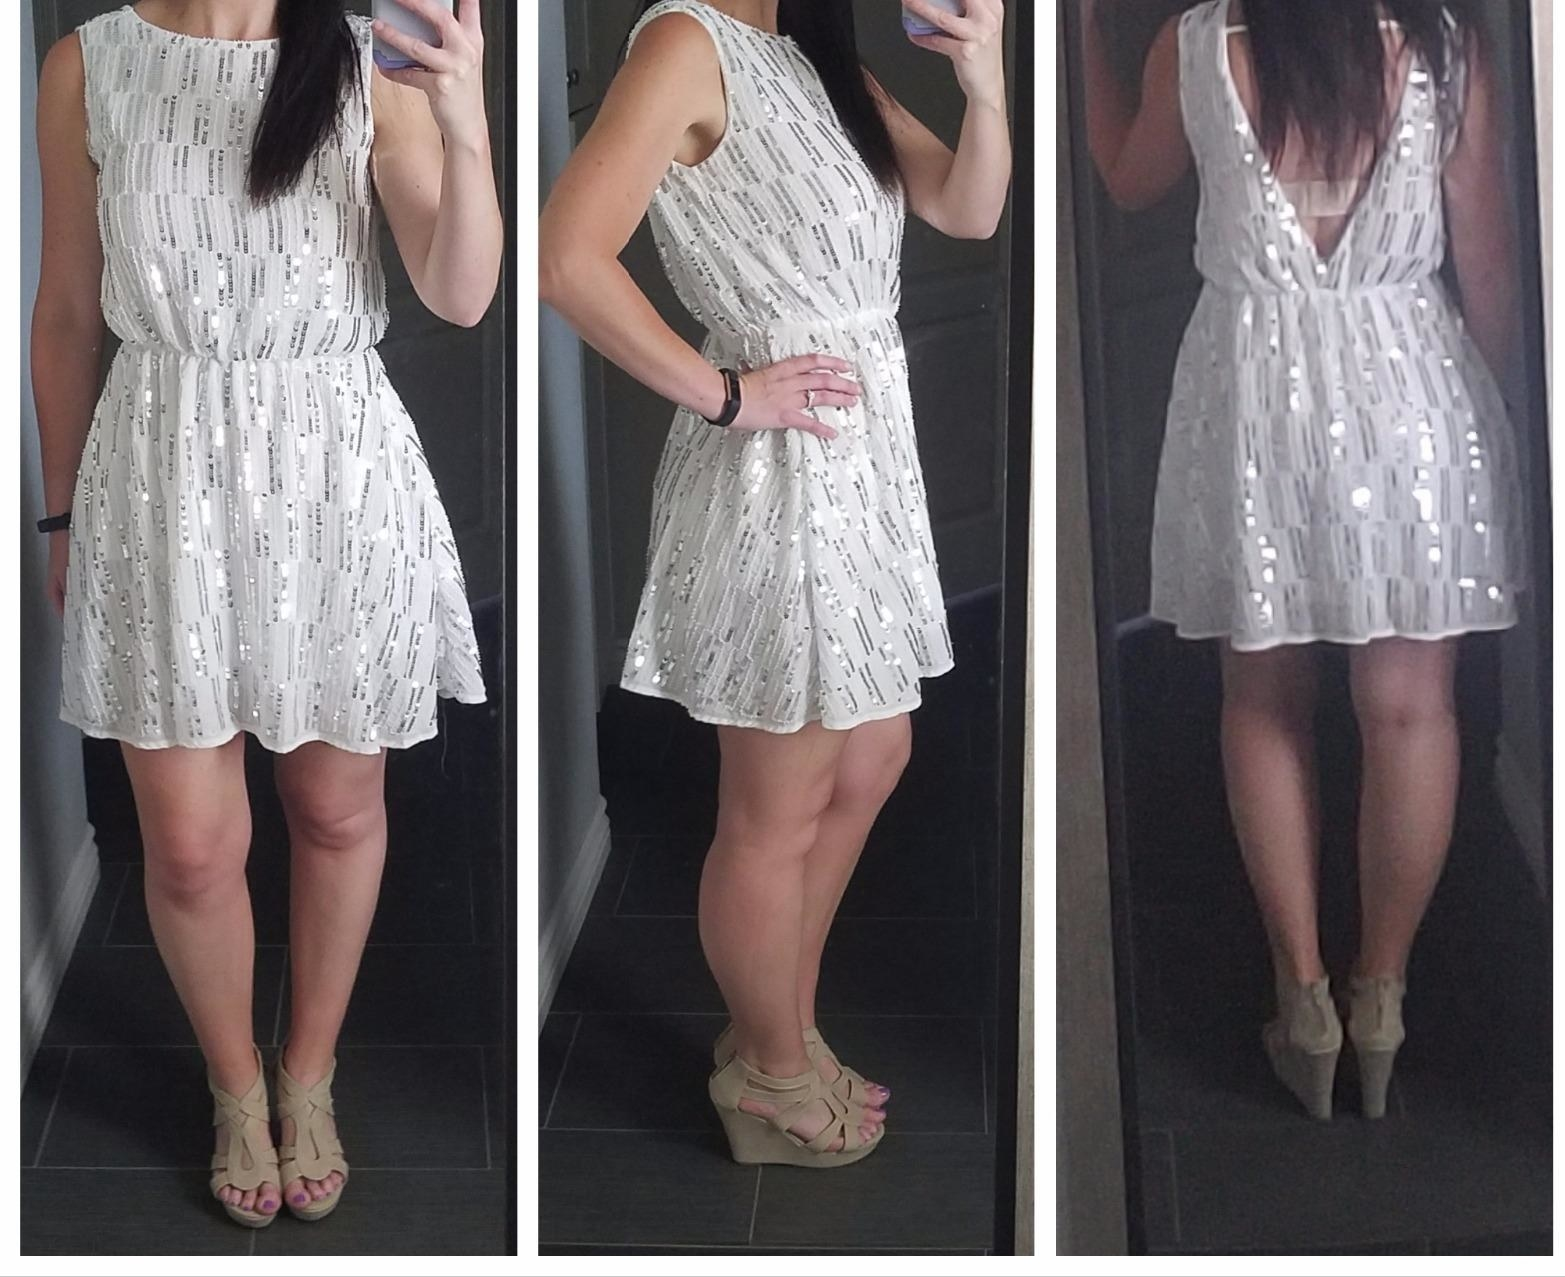 Reviewer in the white dress from the front, side, and back